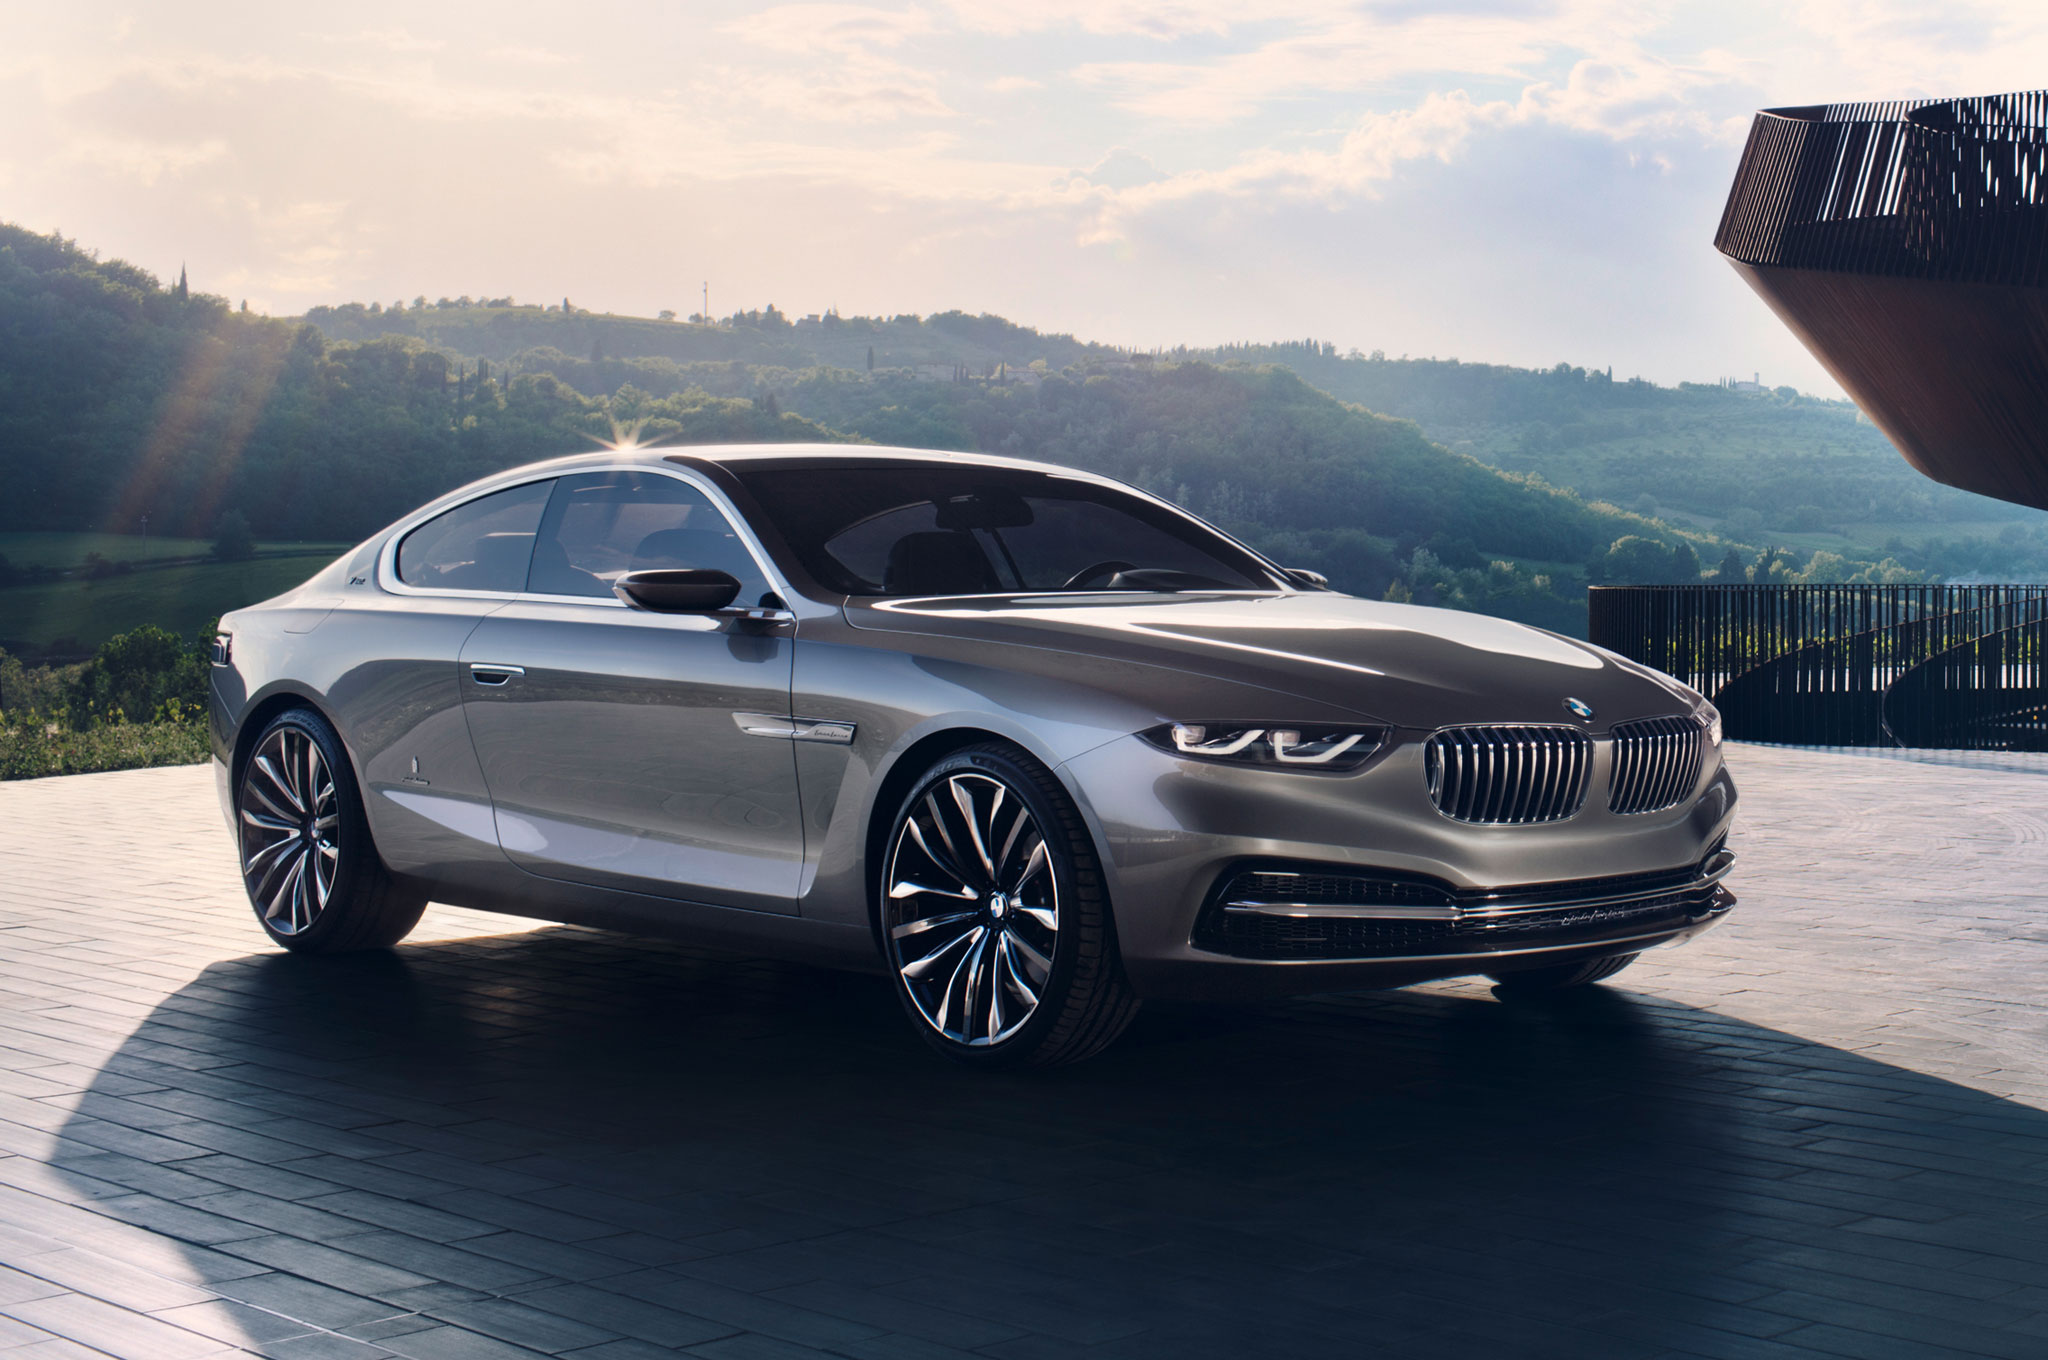 BMW-Pininfarina-Gran-Lusso-Coupe-Concept-right-side-021